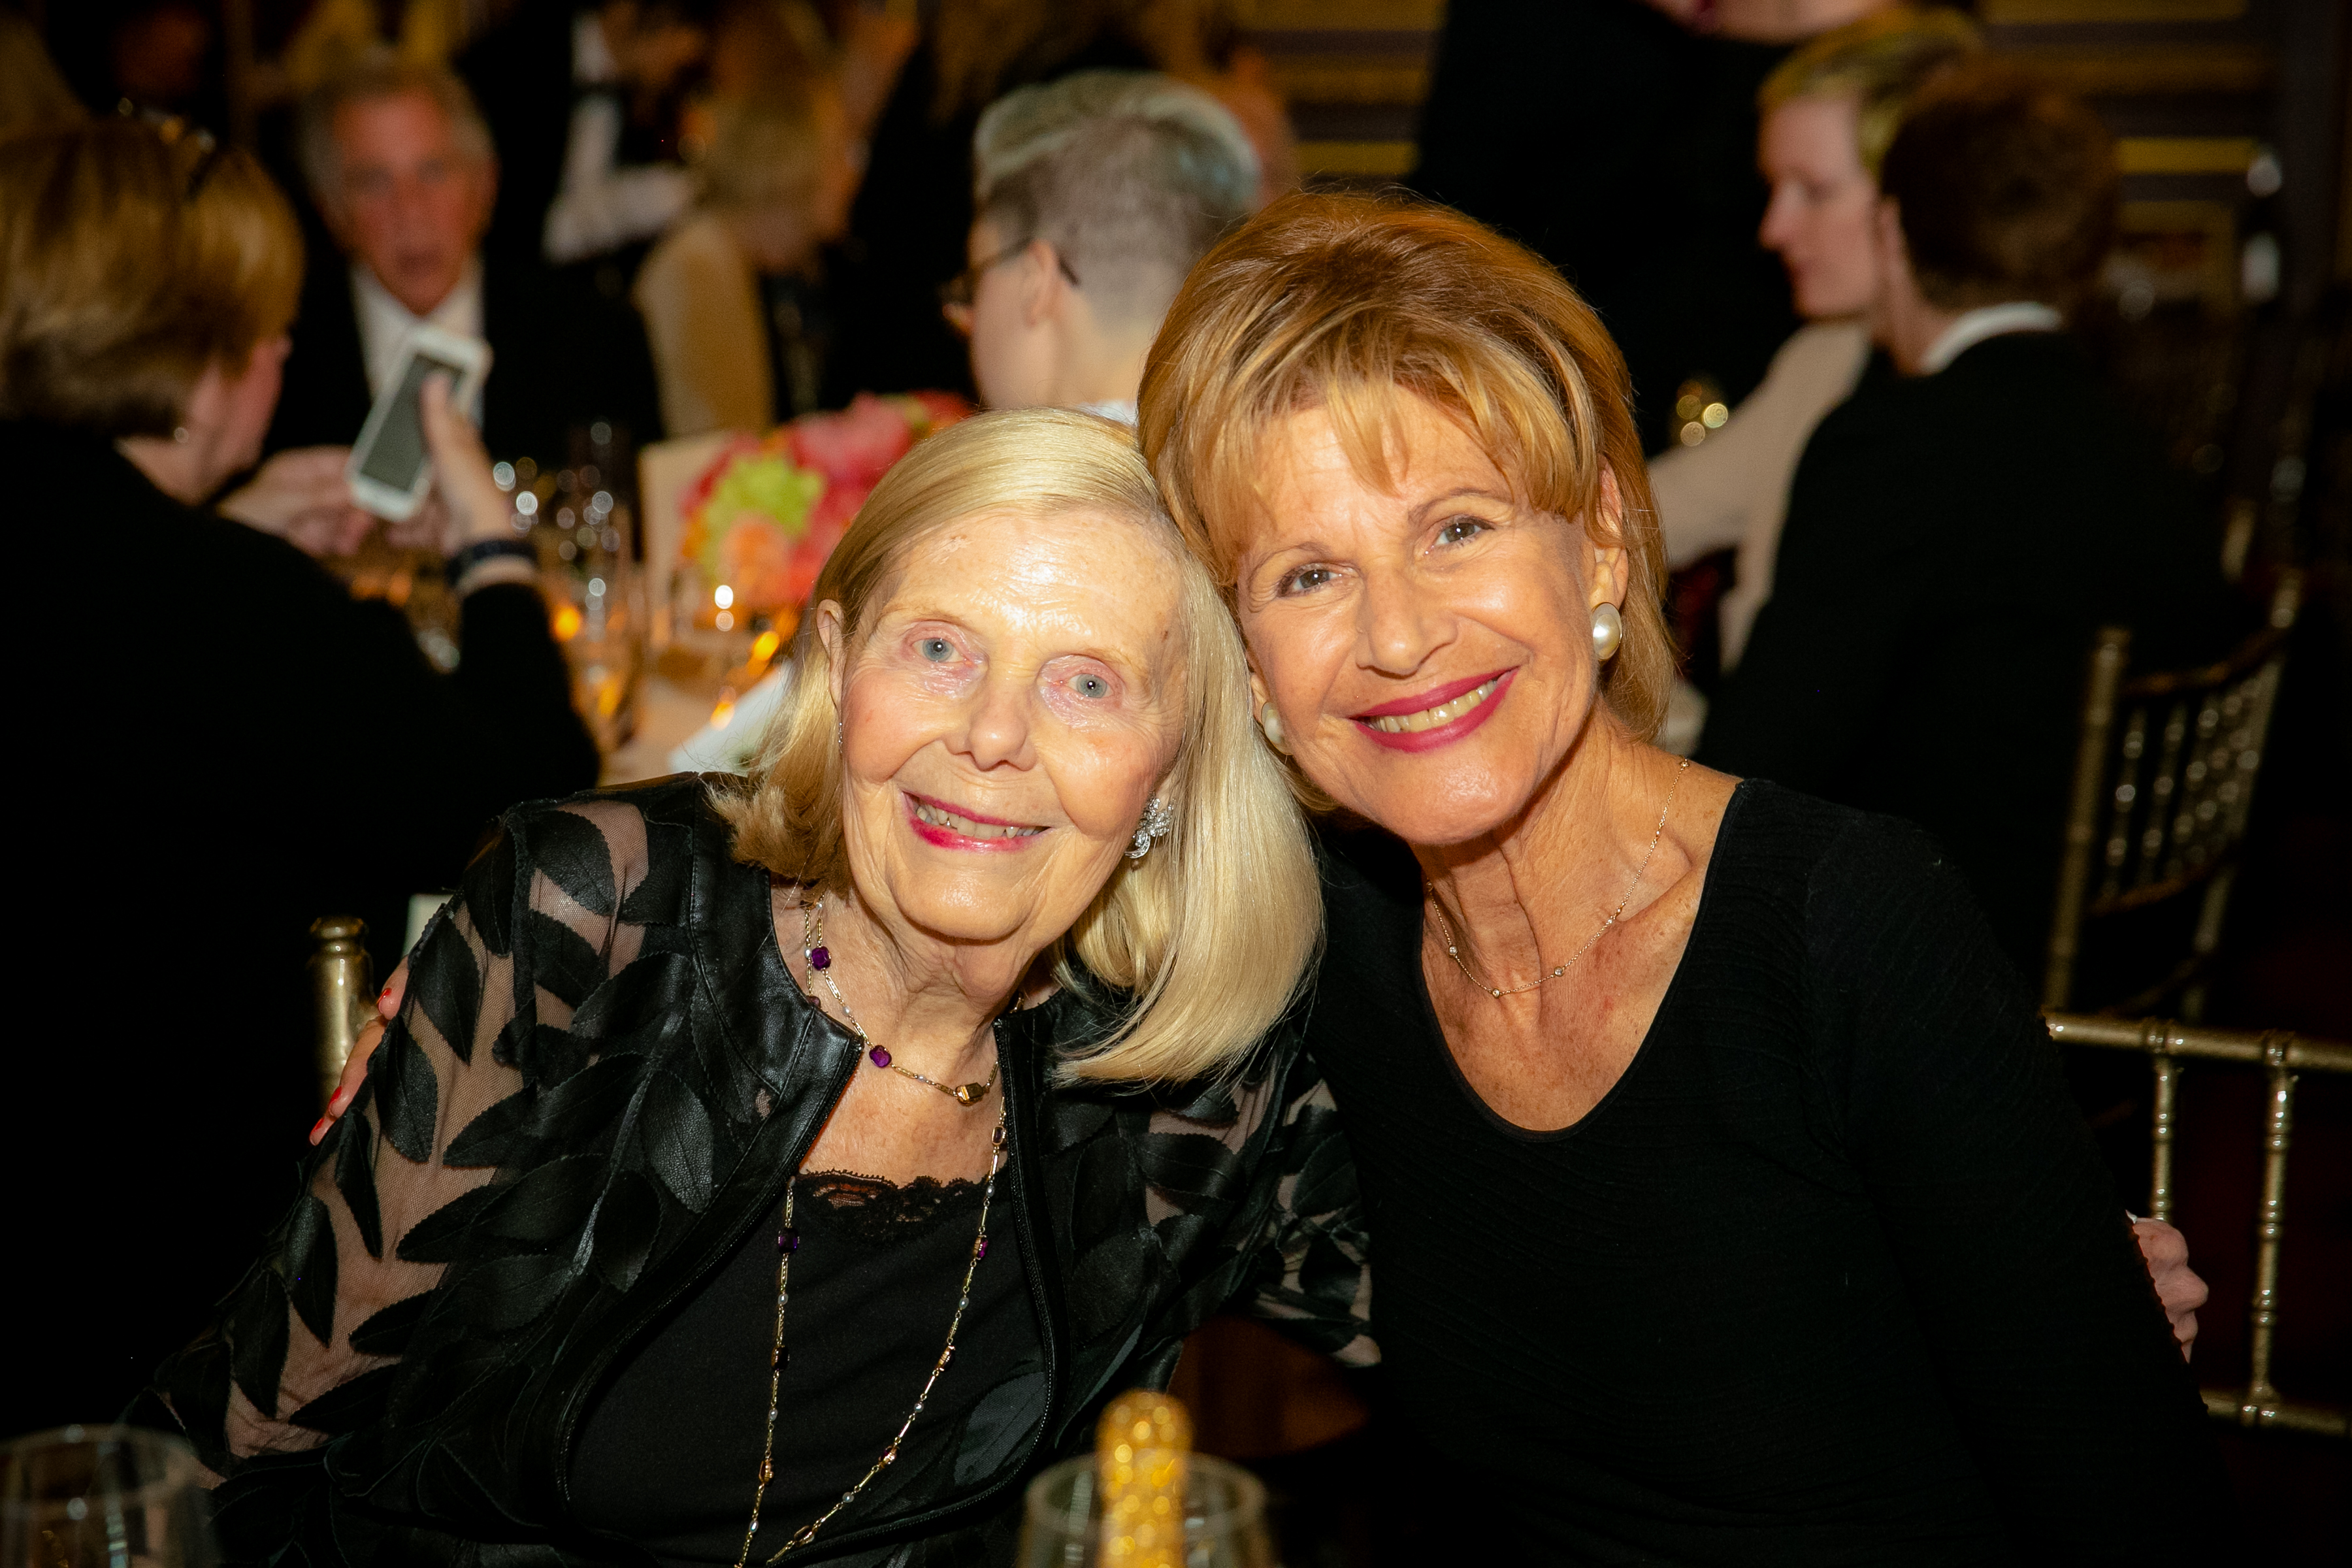 Two women seated side by side smile at the camera during 2019 Gala Event